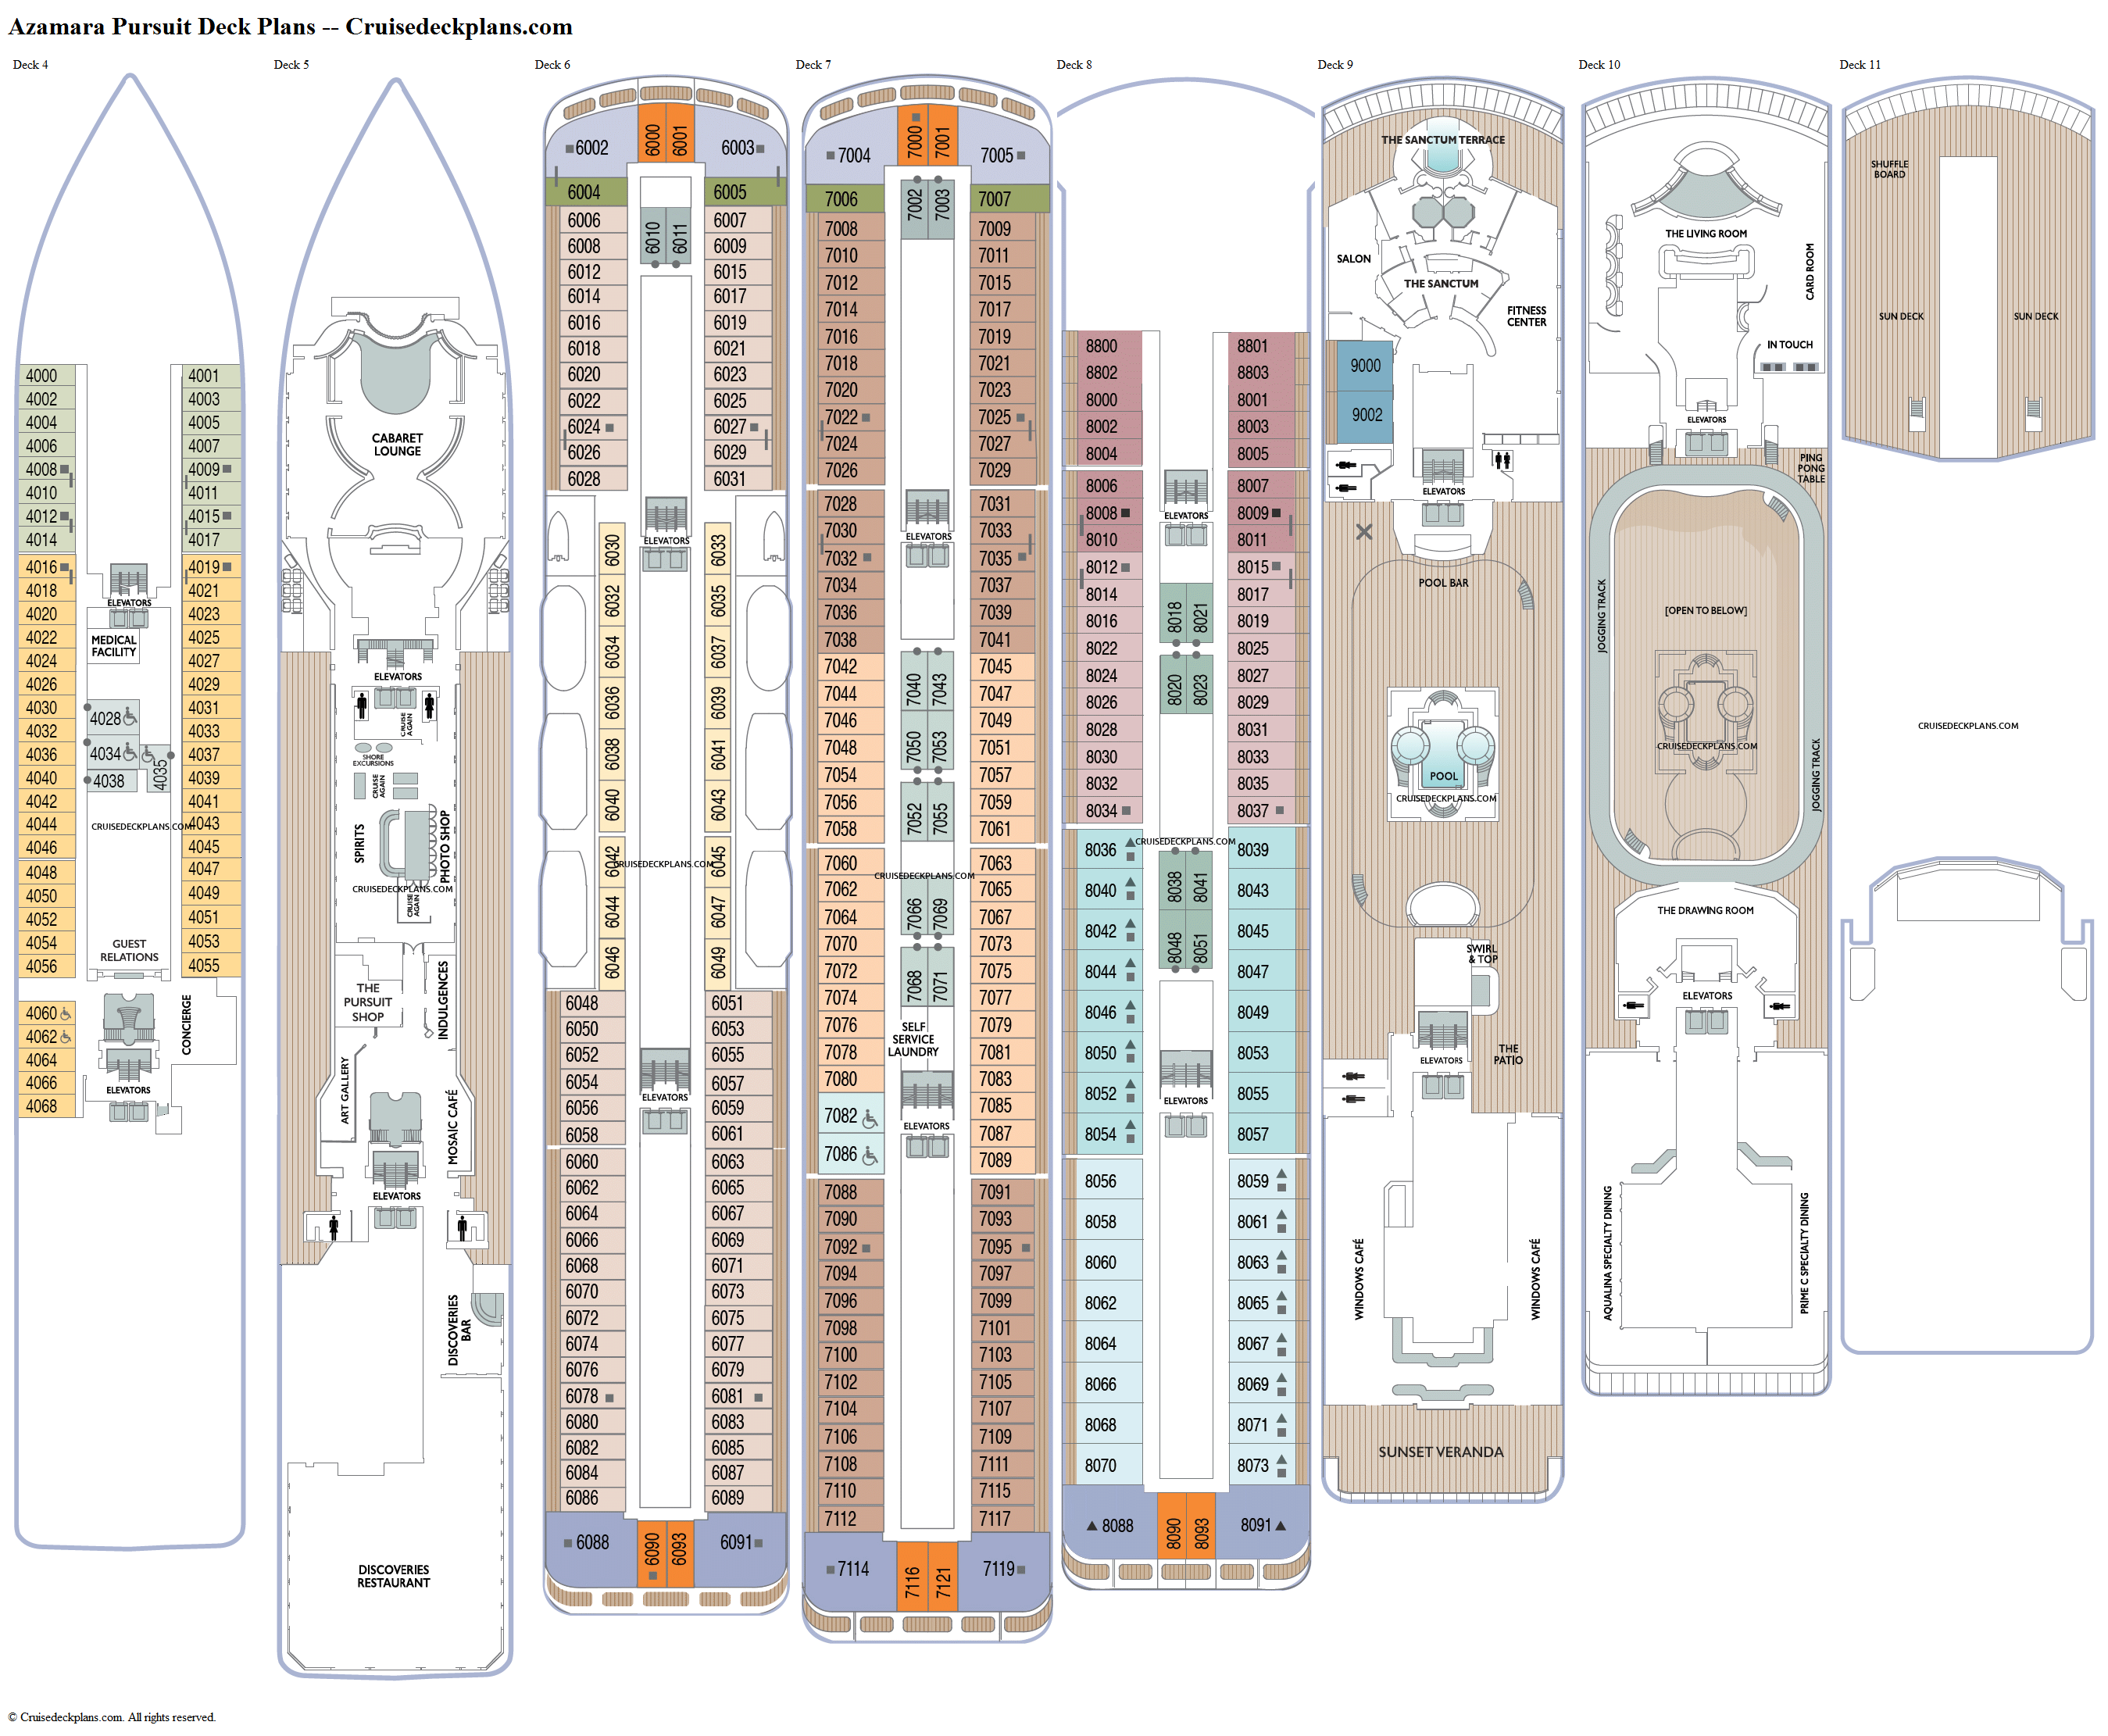 Azamara Pursuit deck plans image